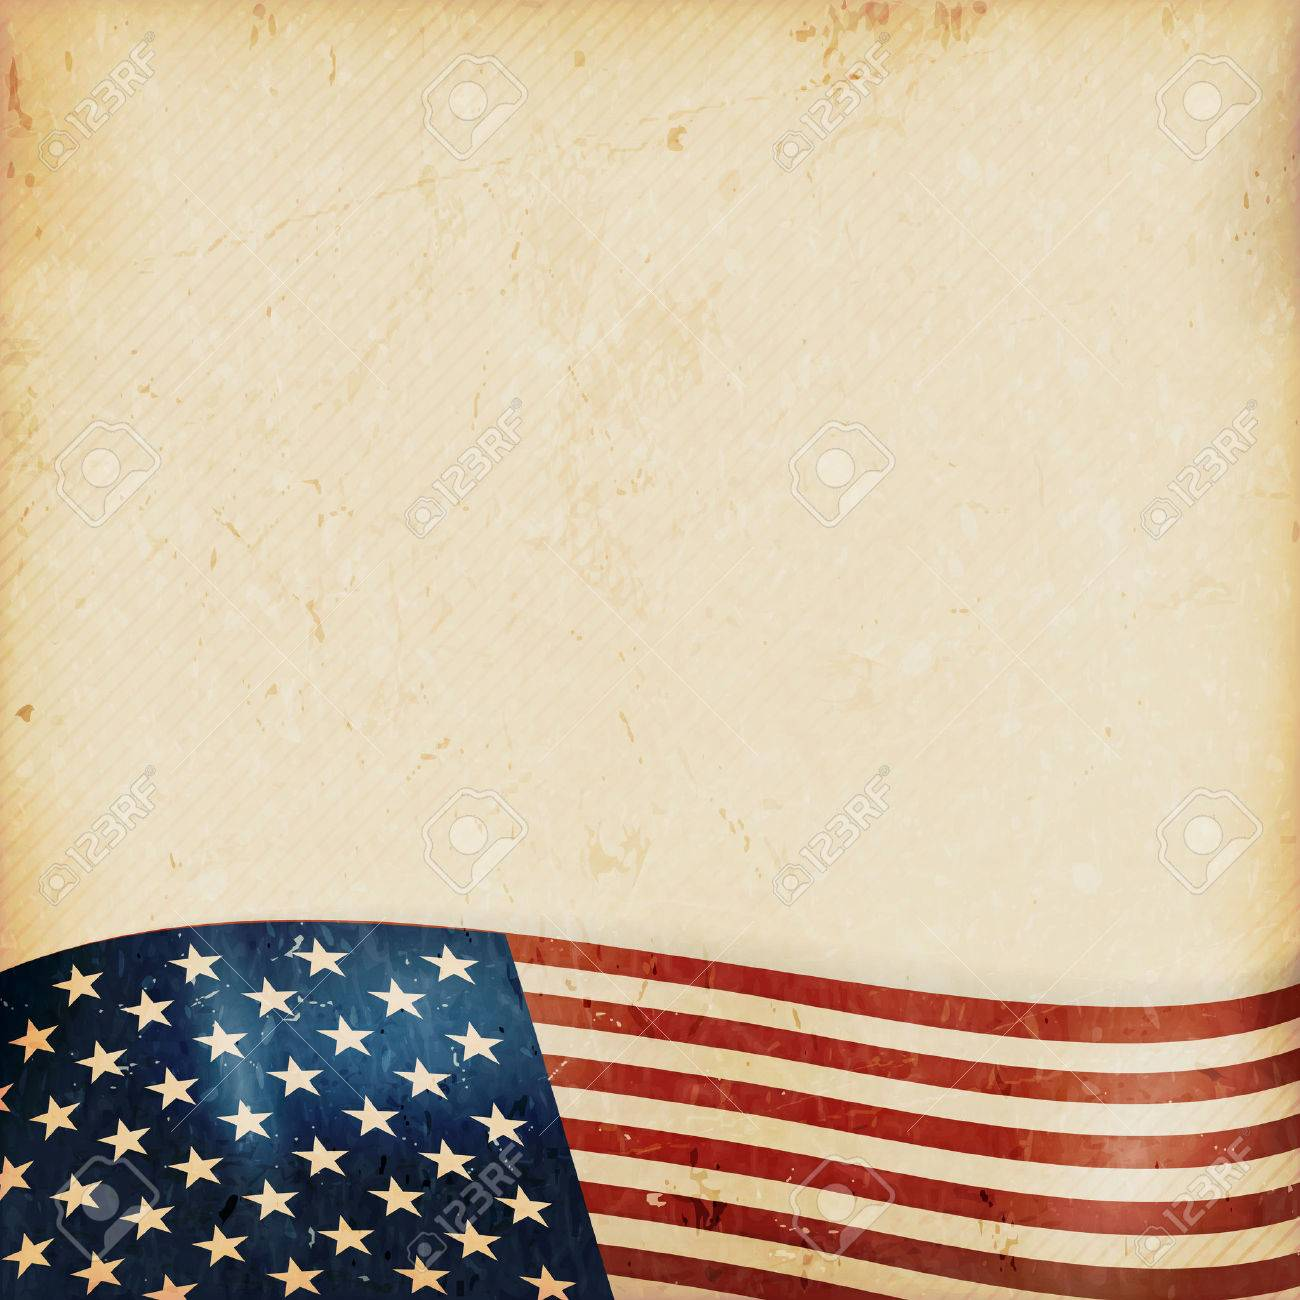 Vintage style grunge background with USA flag at the bottom. Grunge Elements and a faintly striped beige brown background give it a feeling resembling old paper, parchment. - 29473936